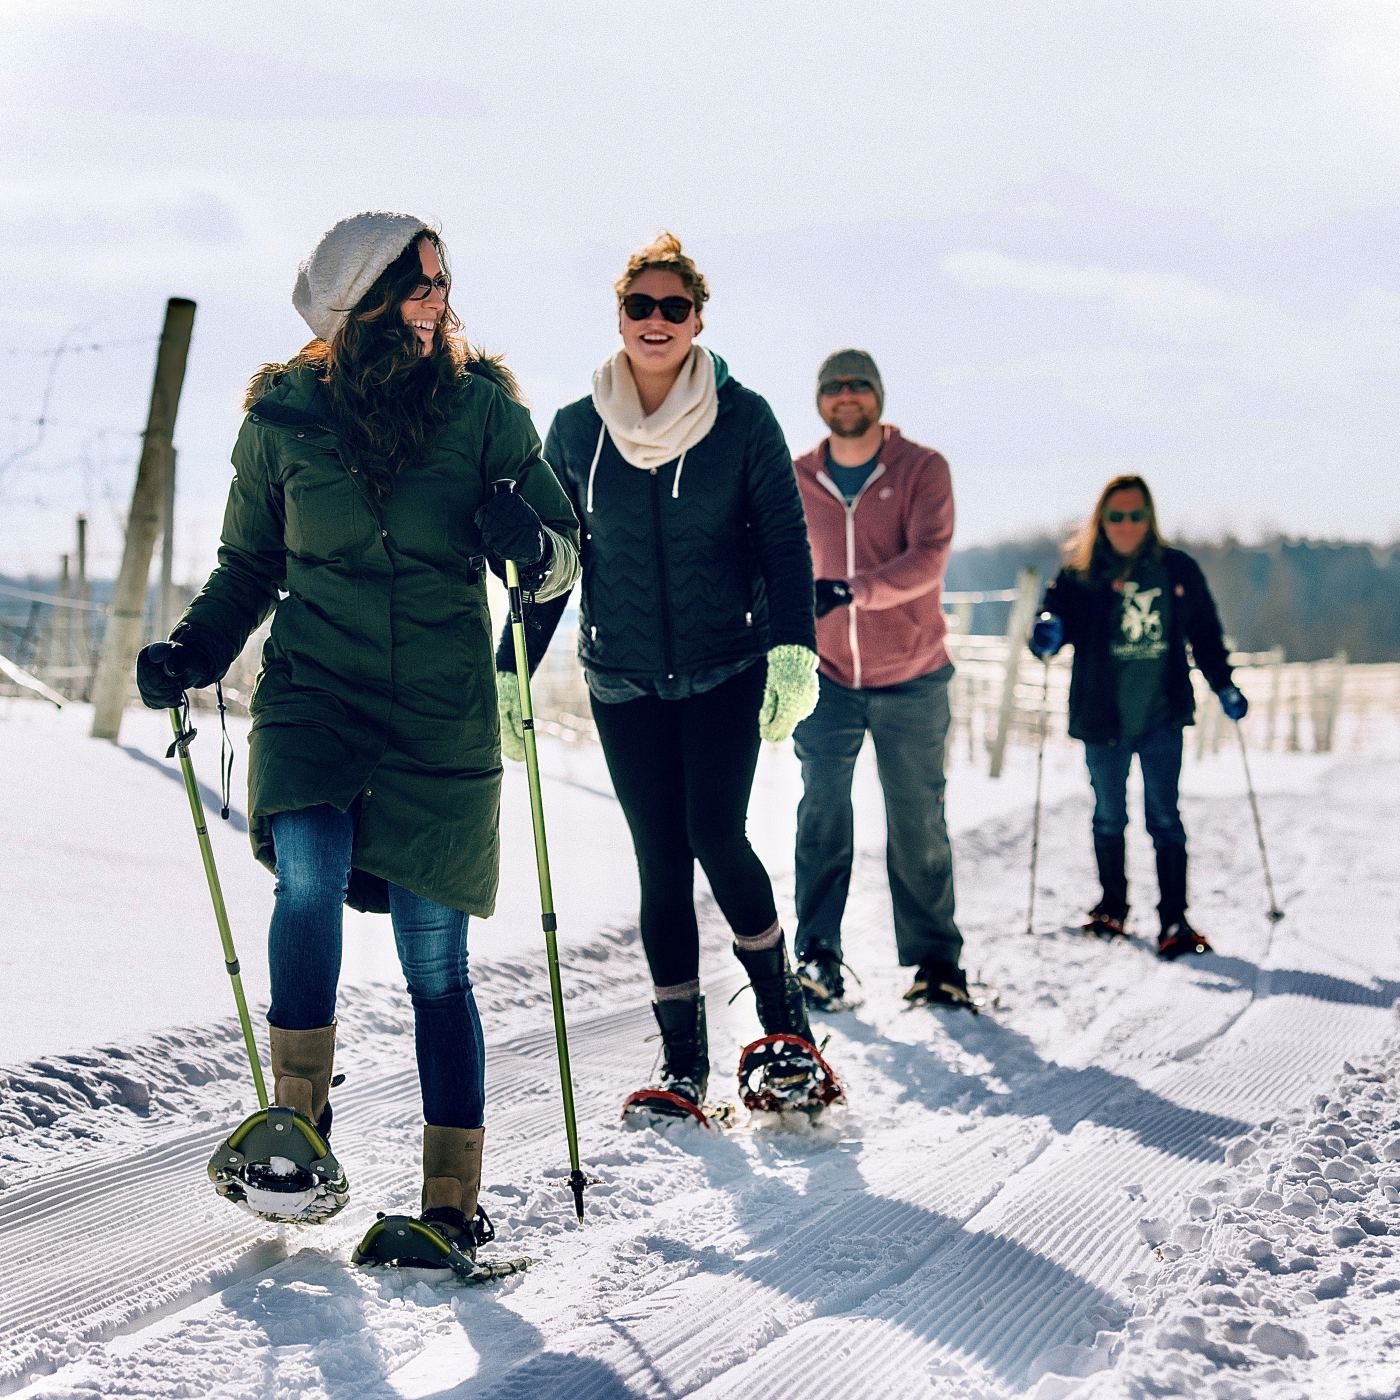 Snowshoe through Northern Michigan vineyards on these winter adventures